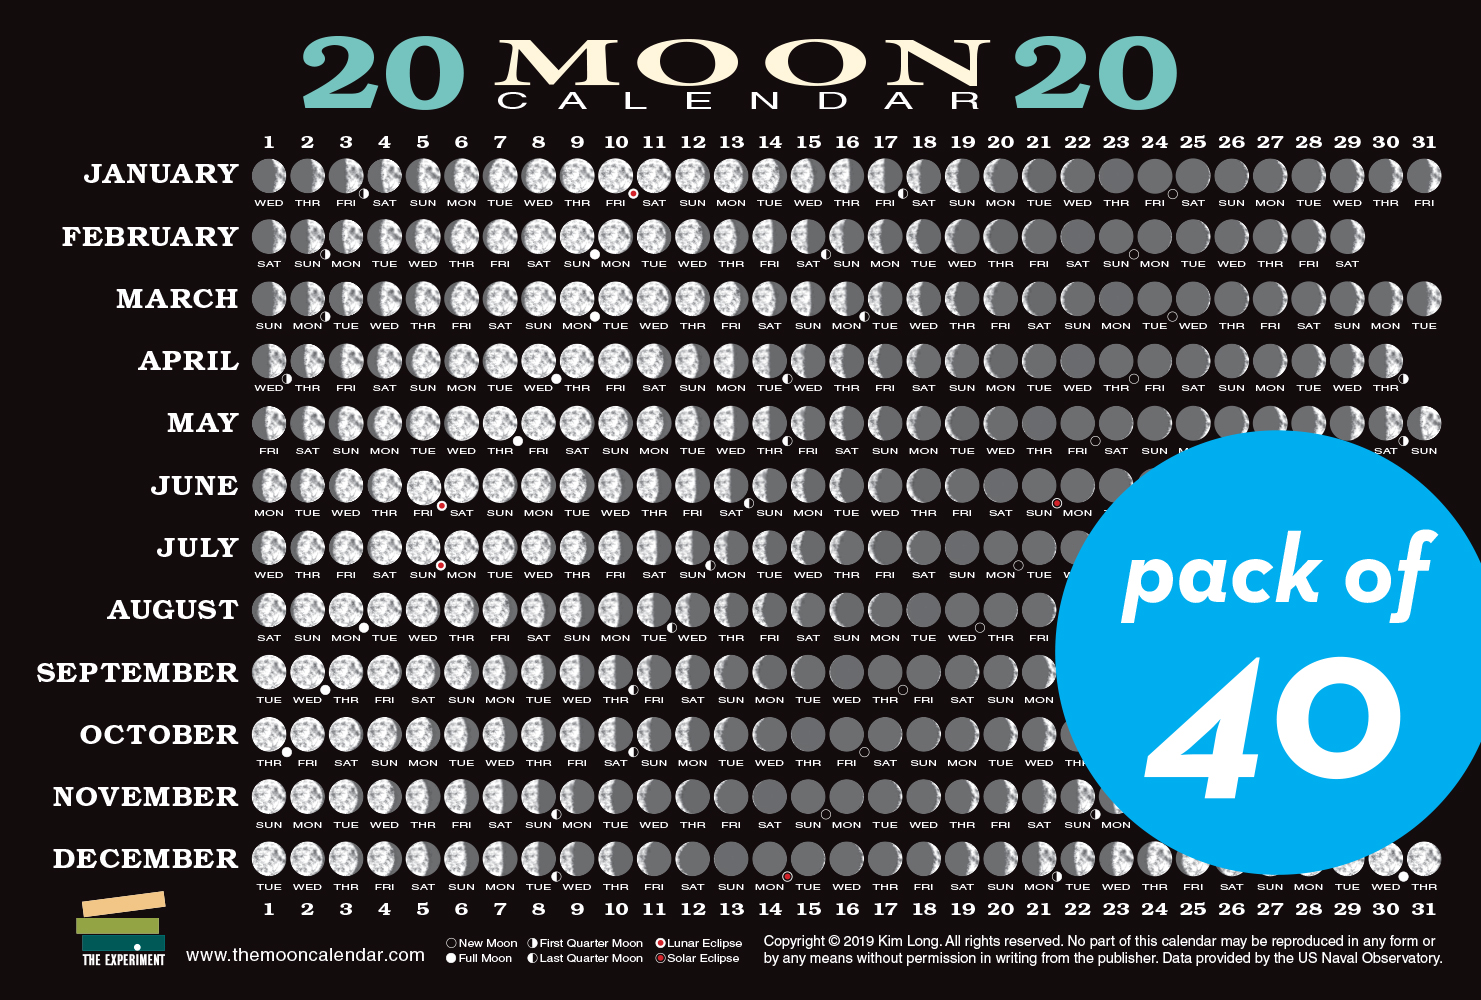 Moon Phases Calendar.2020 Moon Calendar Card 40 Pack Workman Publishing